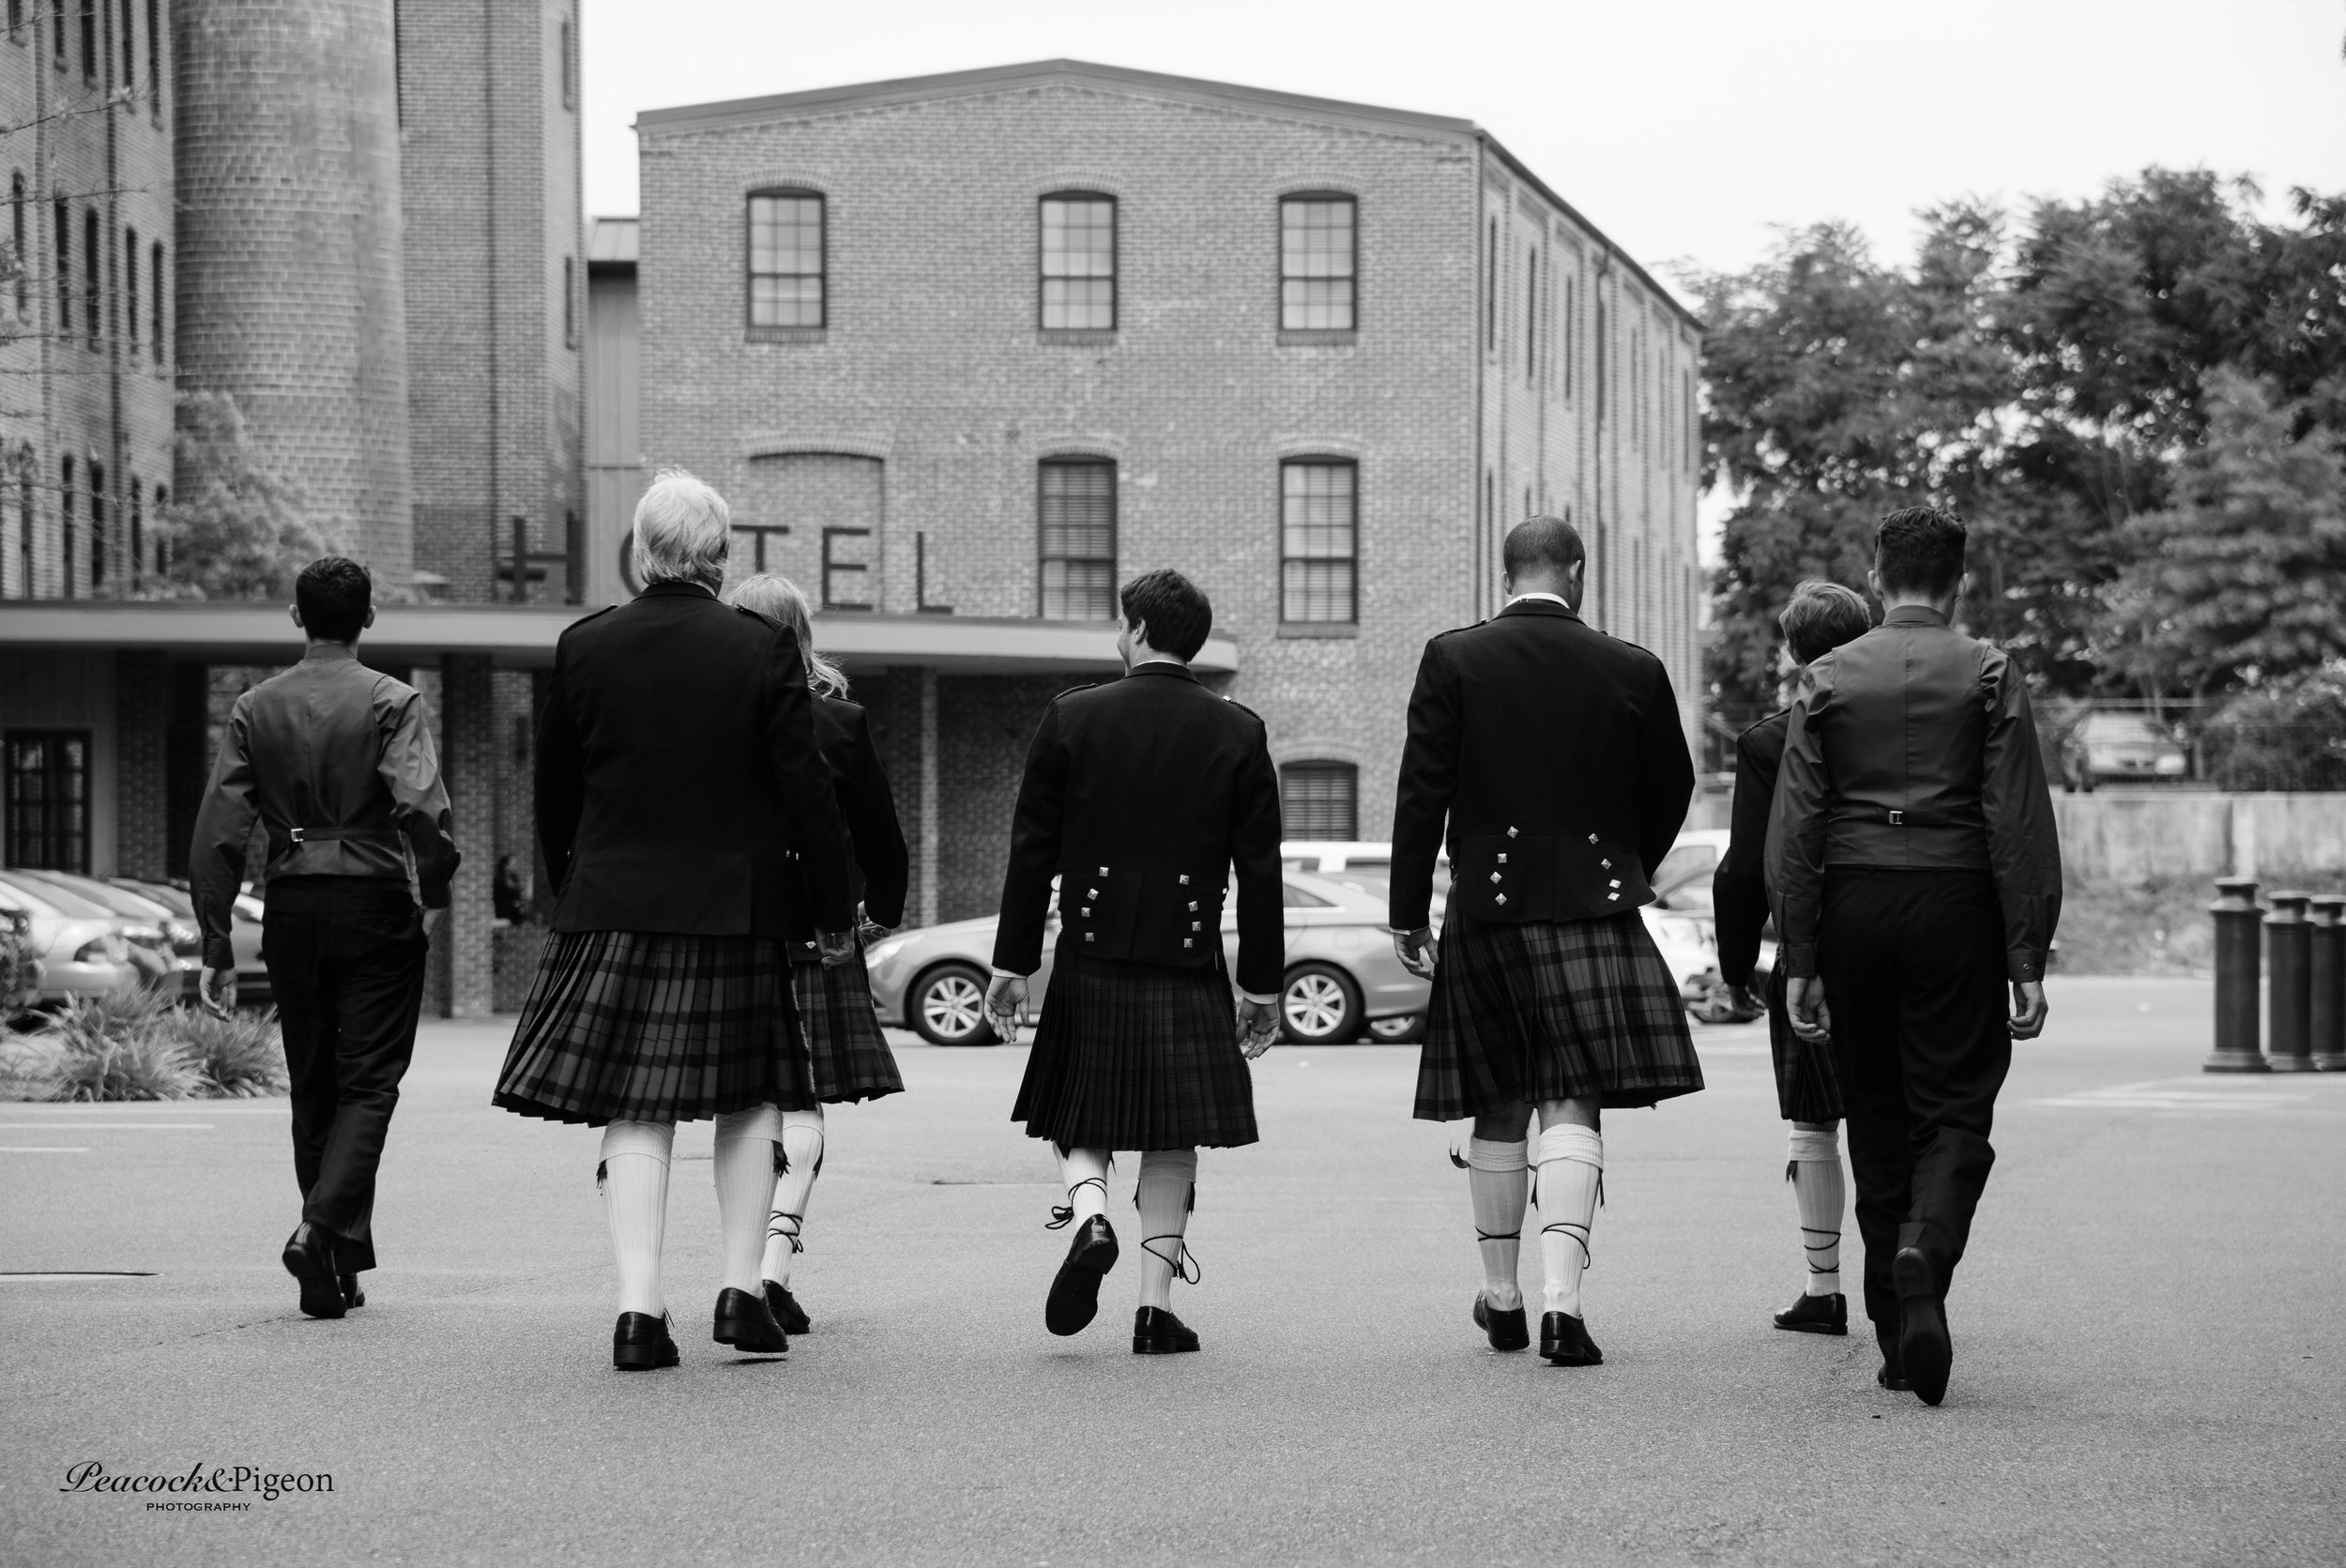 Callum_and_Sara's_Wedding_at_the_Cork_Factory_Hotel_in_Lancaster-Part_Three_The_Groom_Groomsmen_and_Family_Black_and_White_Watermarked-104.jpg